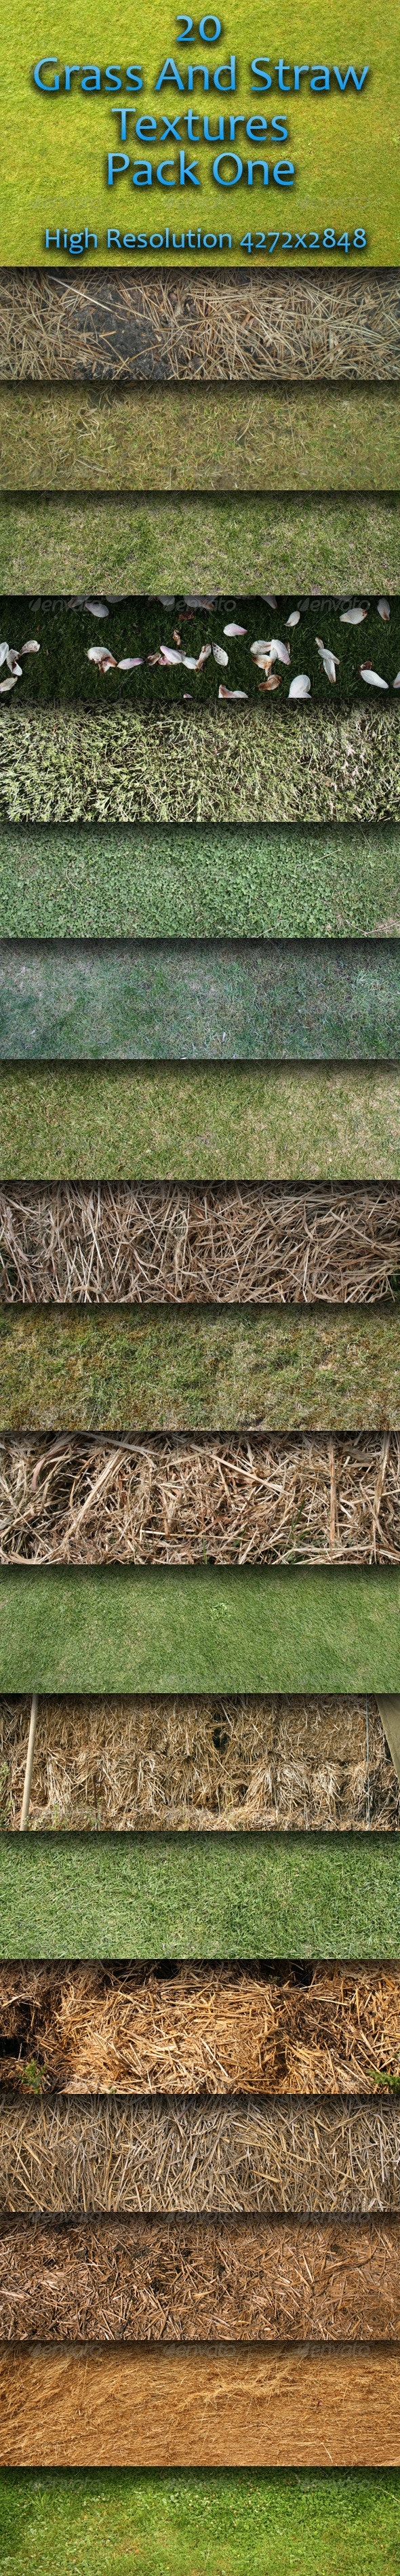 20 Grass And Straw Textures - Pack One  - Nature Textures